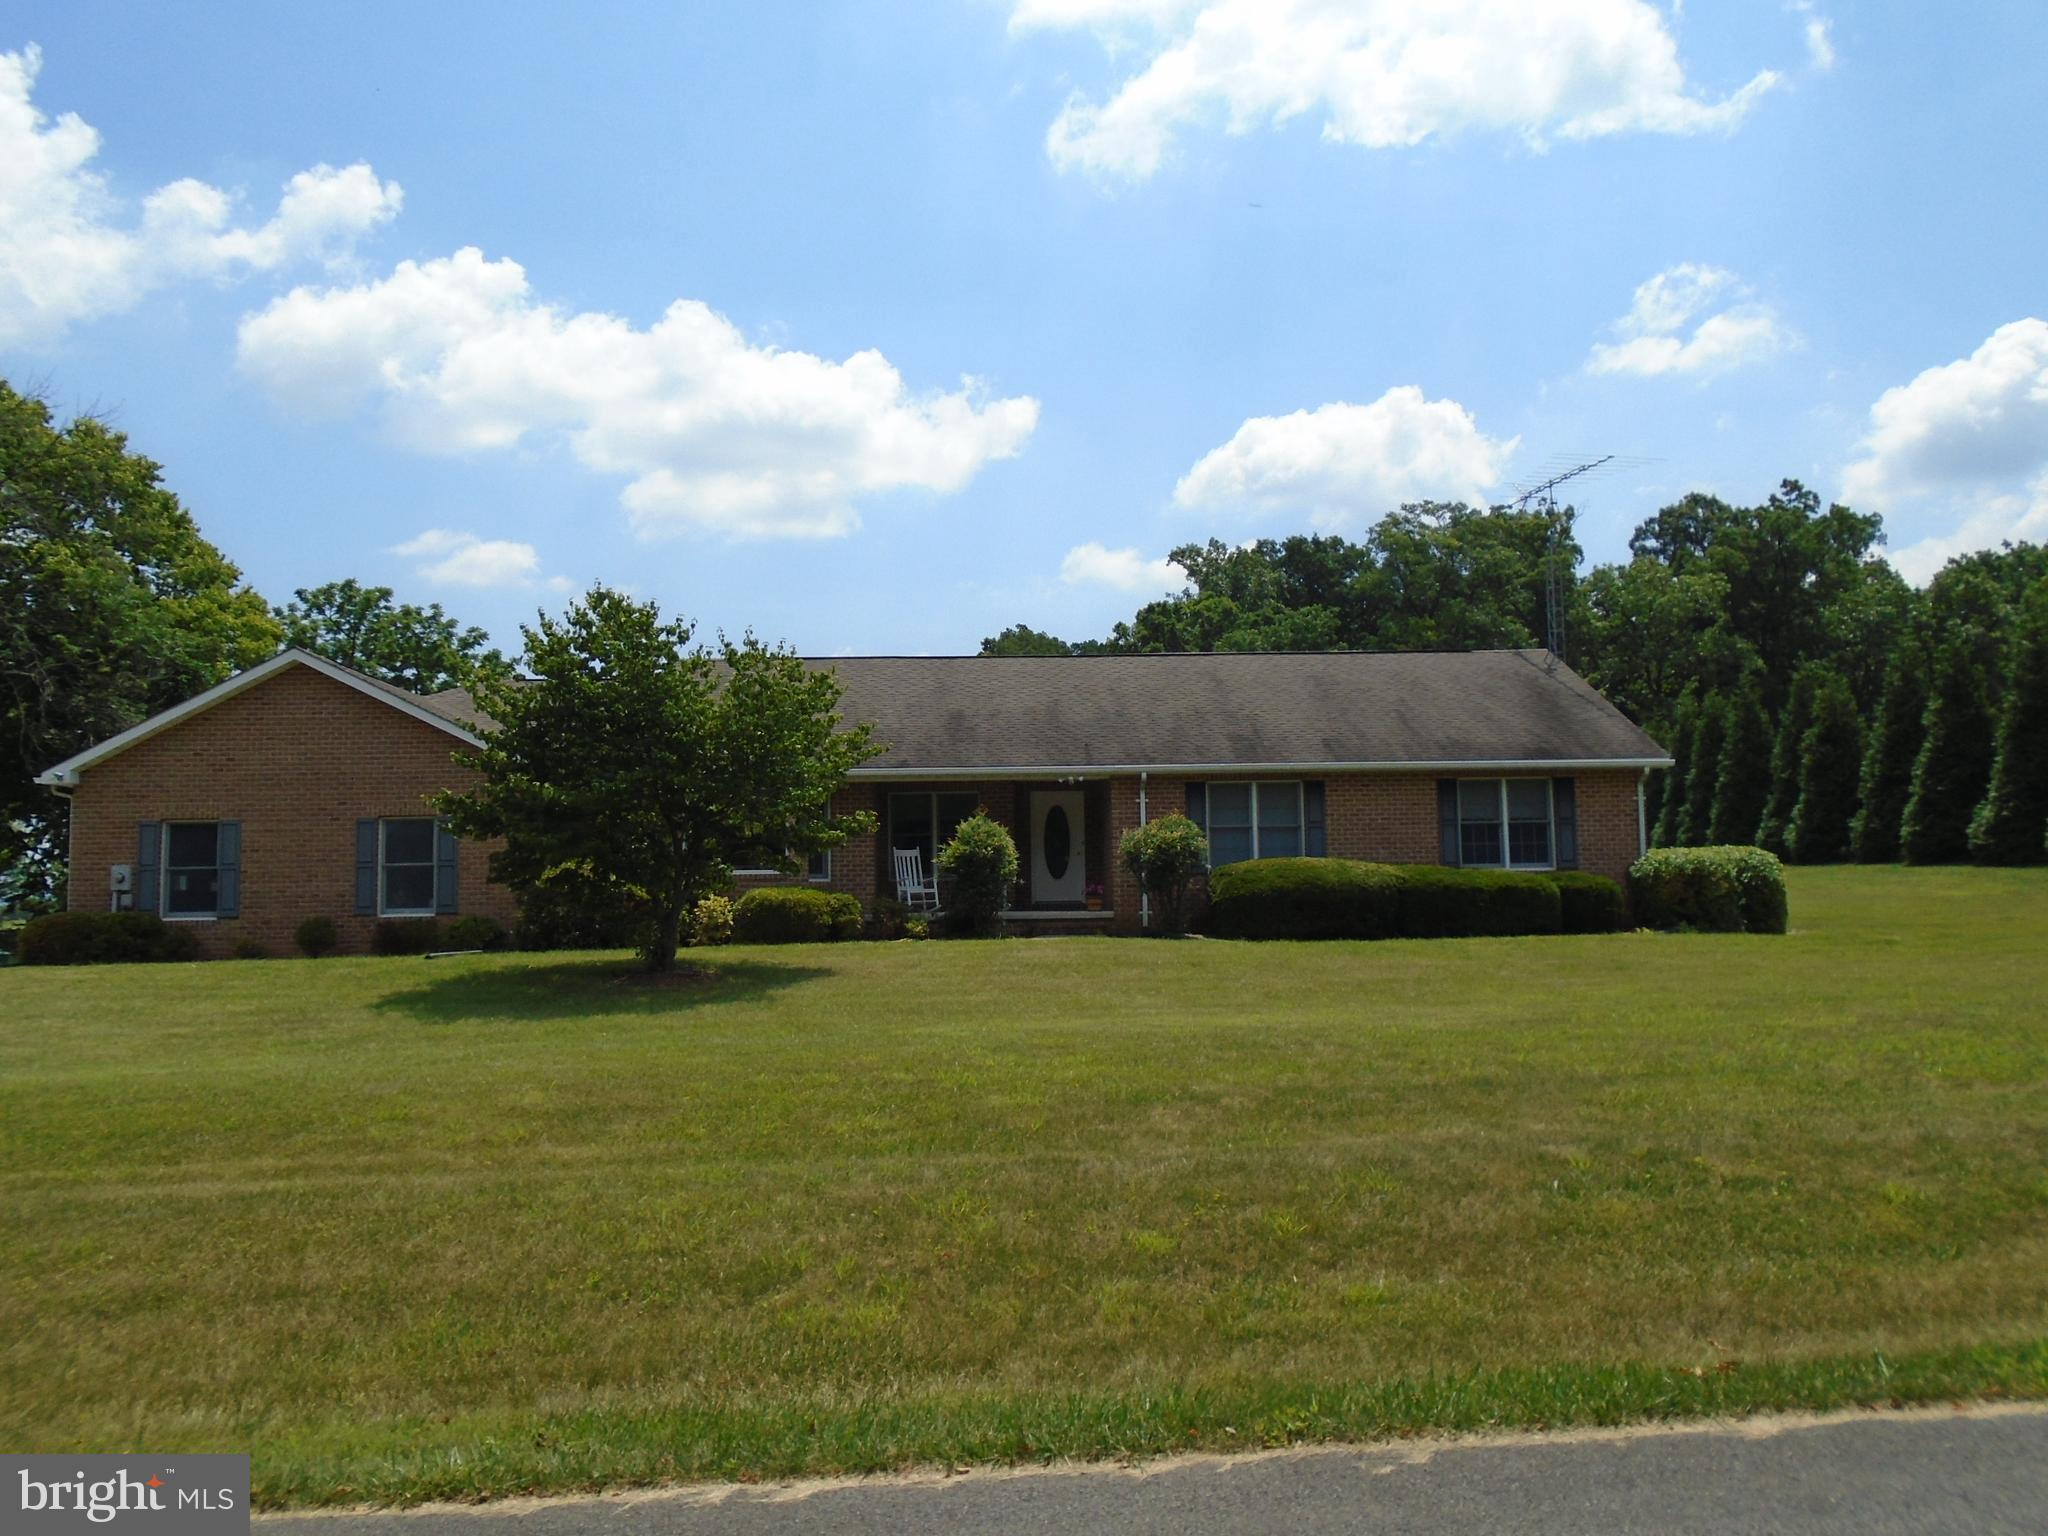 30 PURDHAM, SHENANDOAH JUNCTION, WV 25442